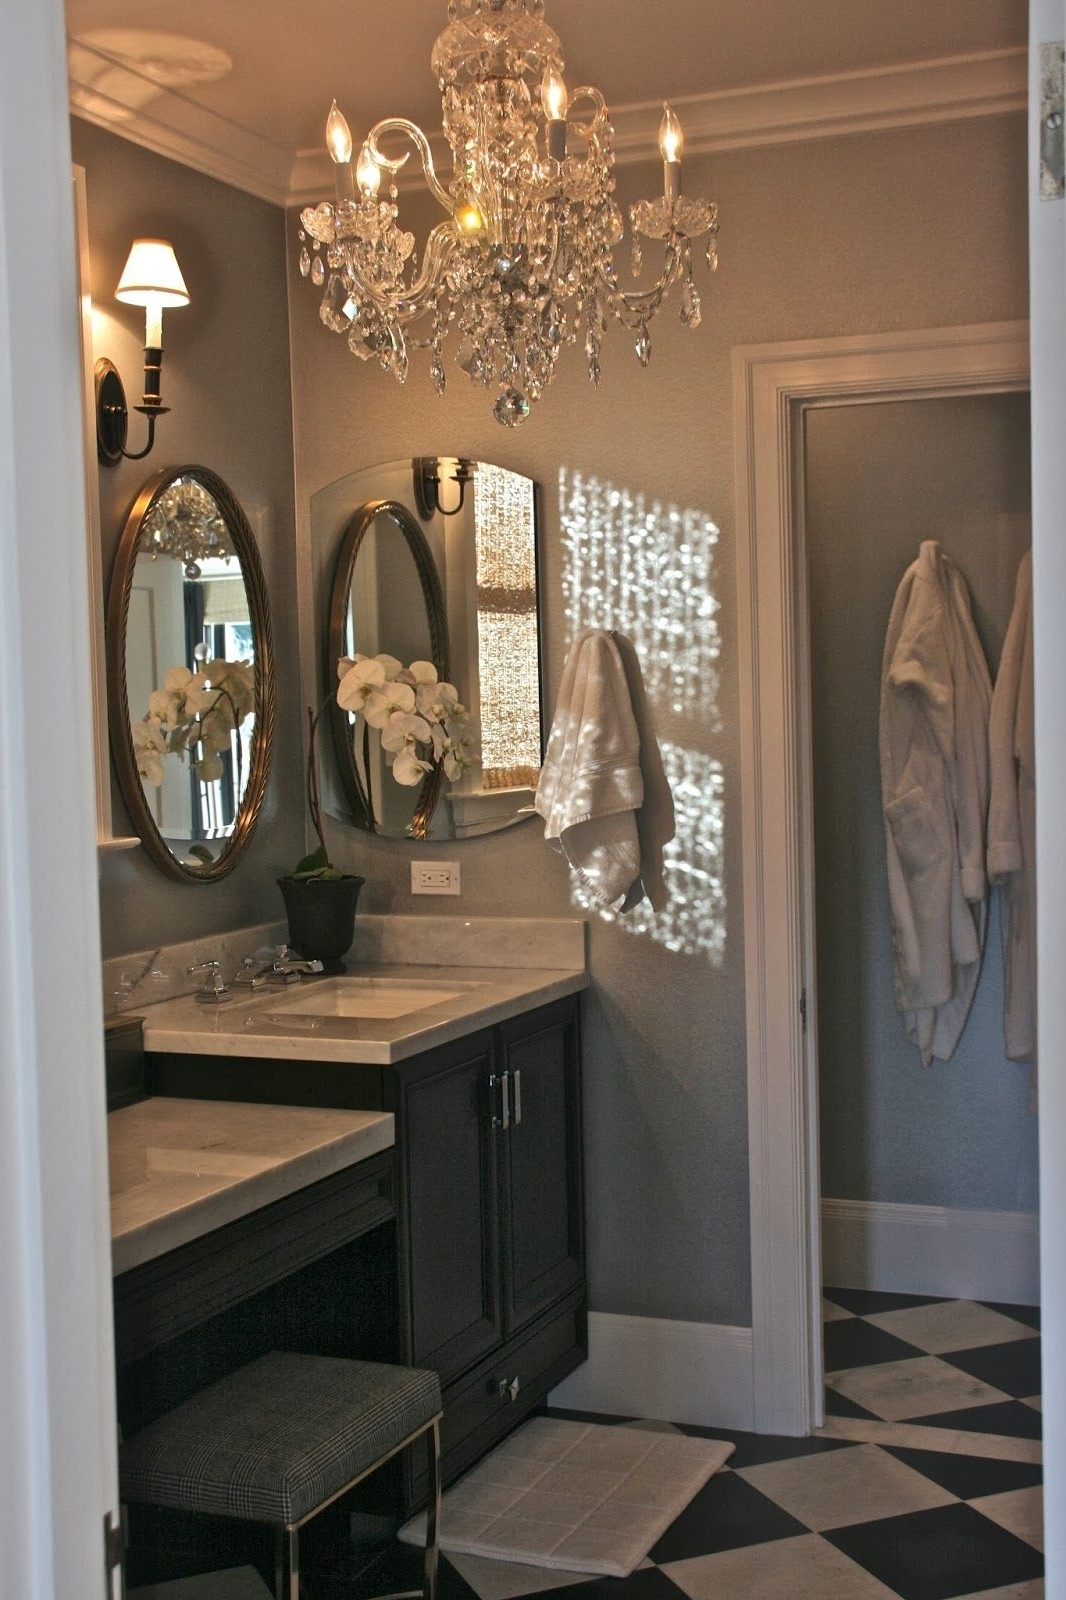 Crystal Chandelier Bathroom Lighting Intended For 2018 Elegant Retreat. .  (View 5 of 15)